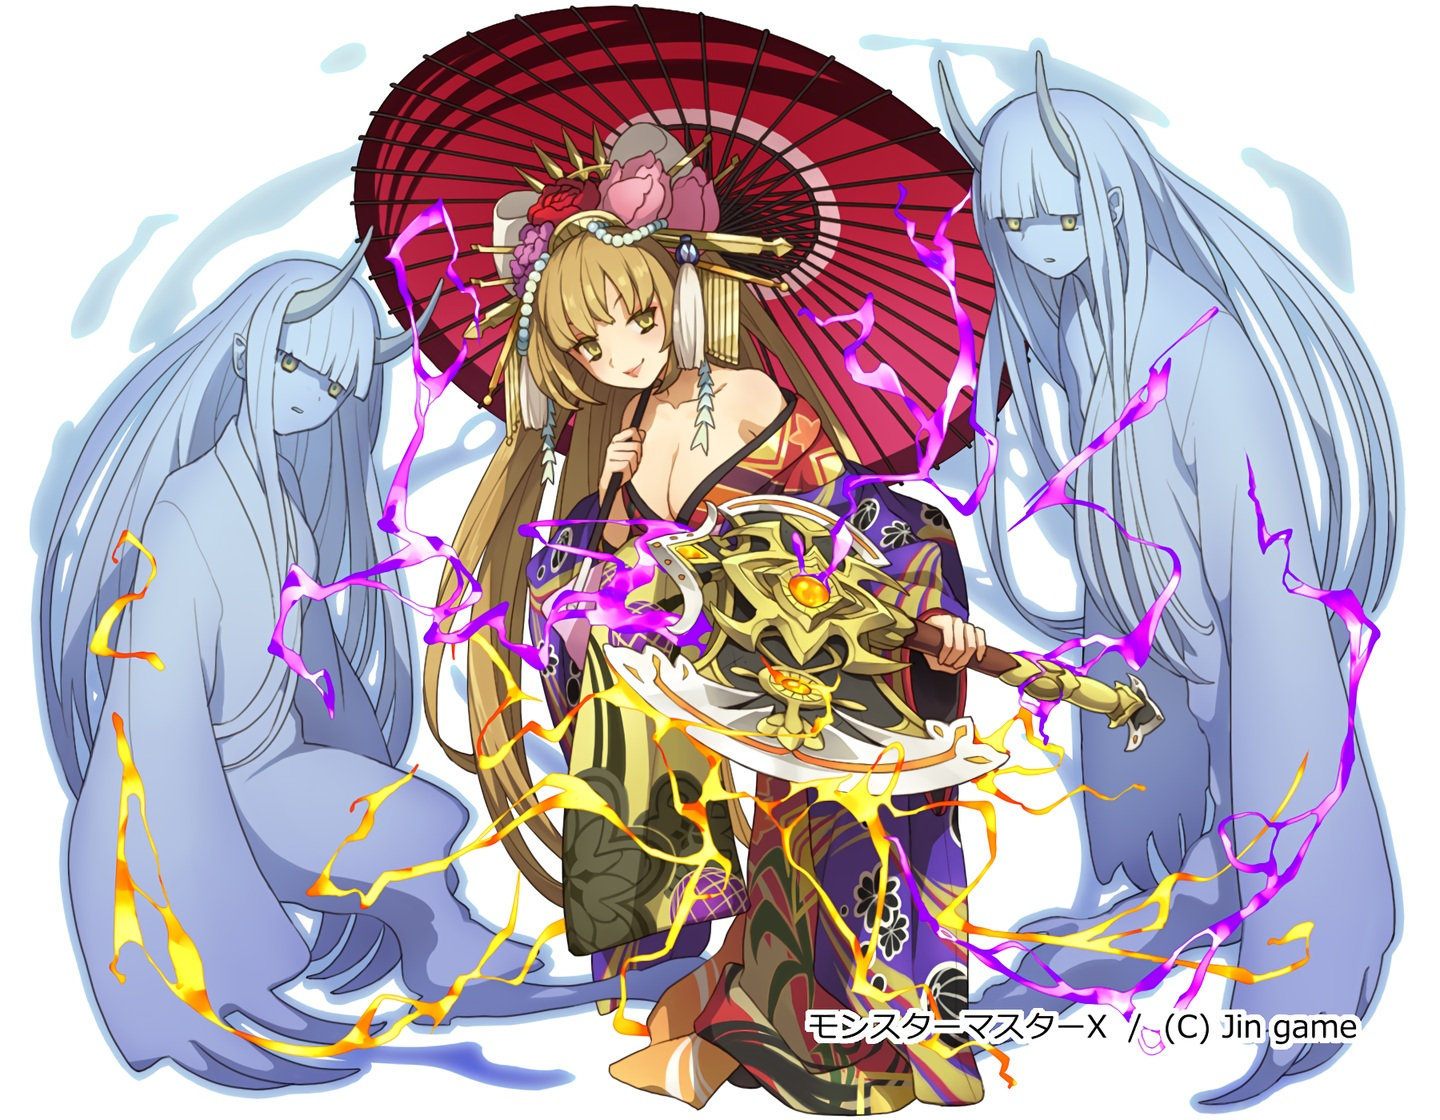 breasts brown_hair cleavage headdress horns japanese_clothes kimono long_hair maasa magic original pointed_ears umbrella waifu2x weapon yellow_eyes